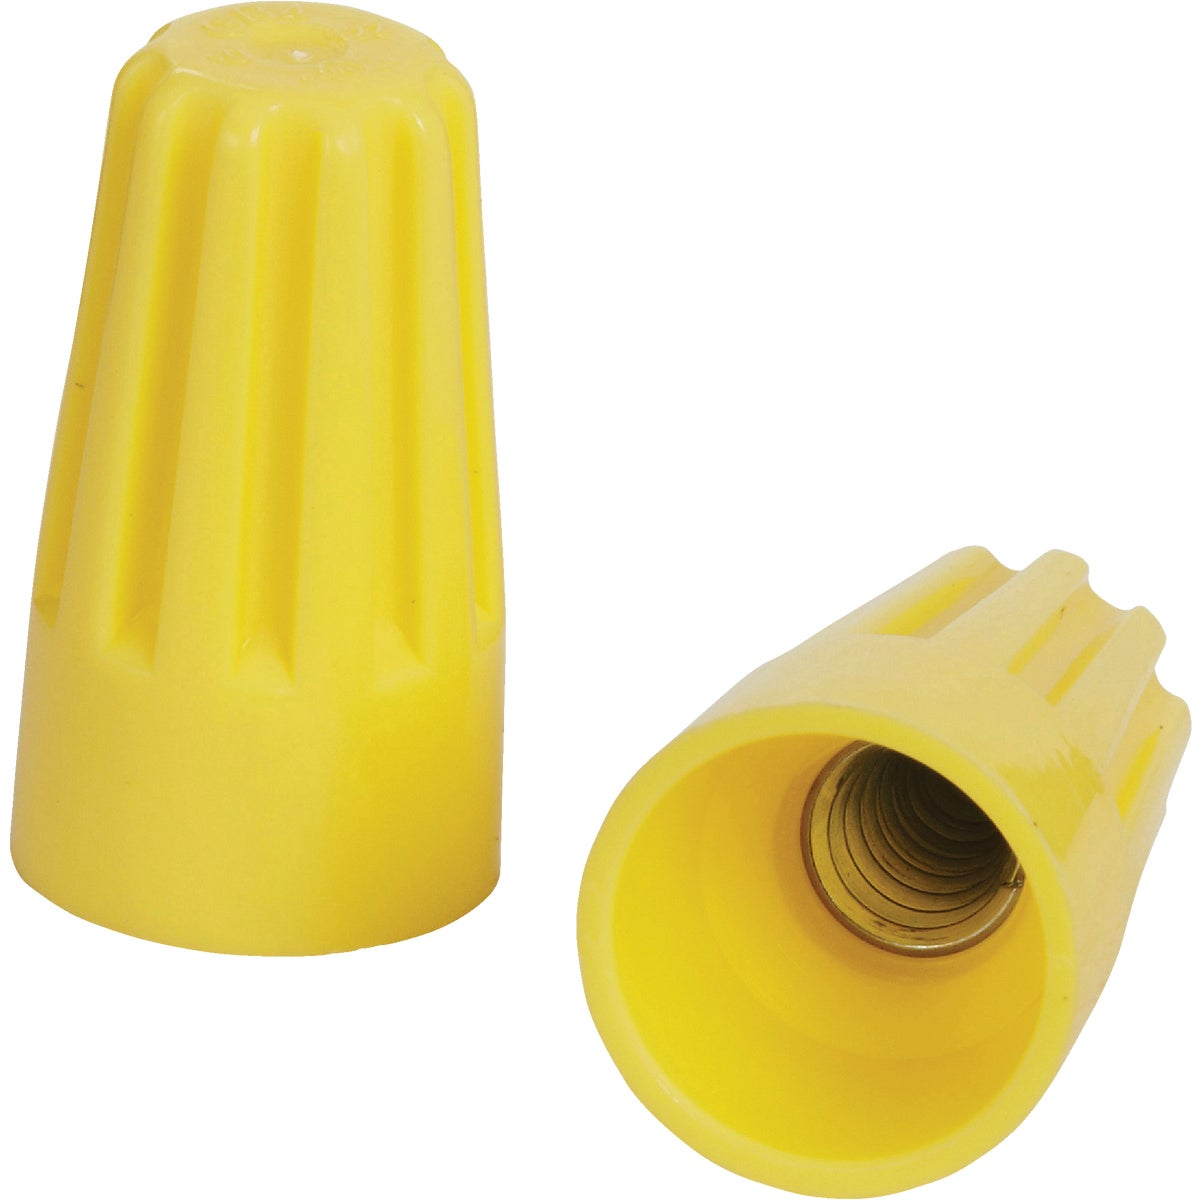 18-10AWG CAP CONNECTOR - 16-004 by G B Electrical Inc